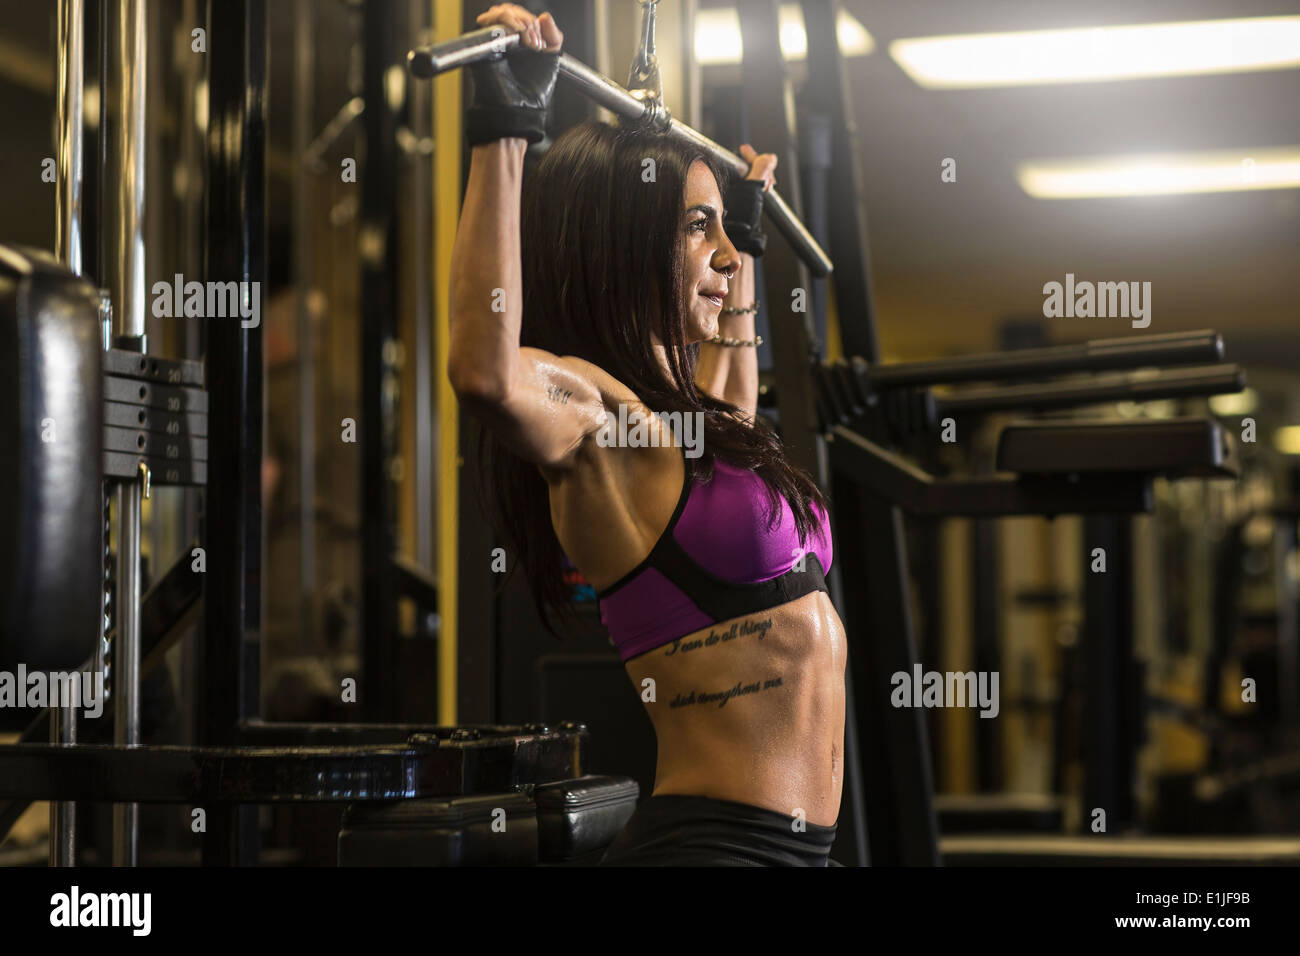 Mid adult woman in gym doing pectoral exercise - Stock Image